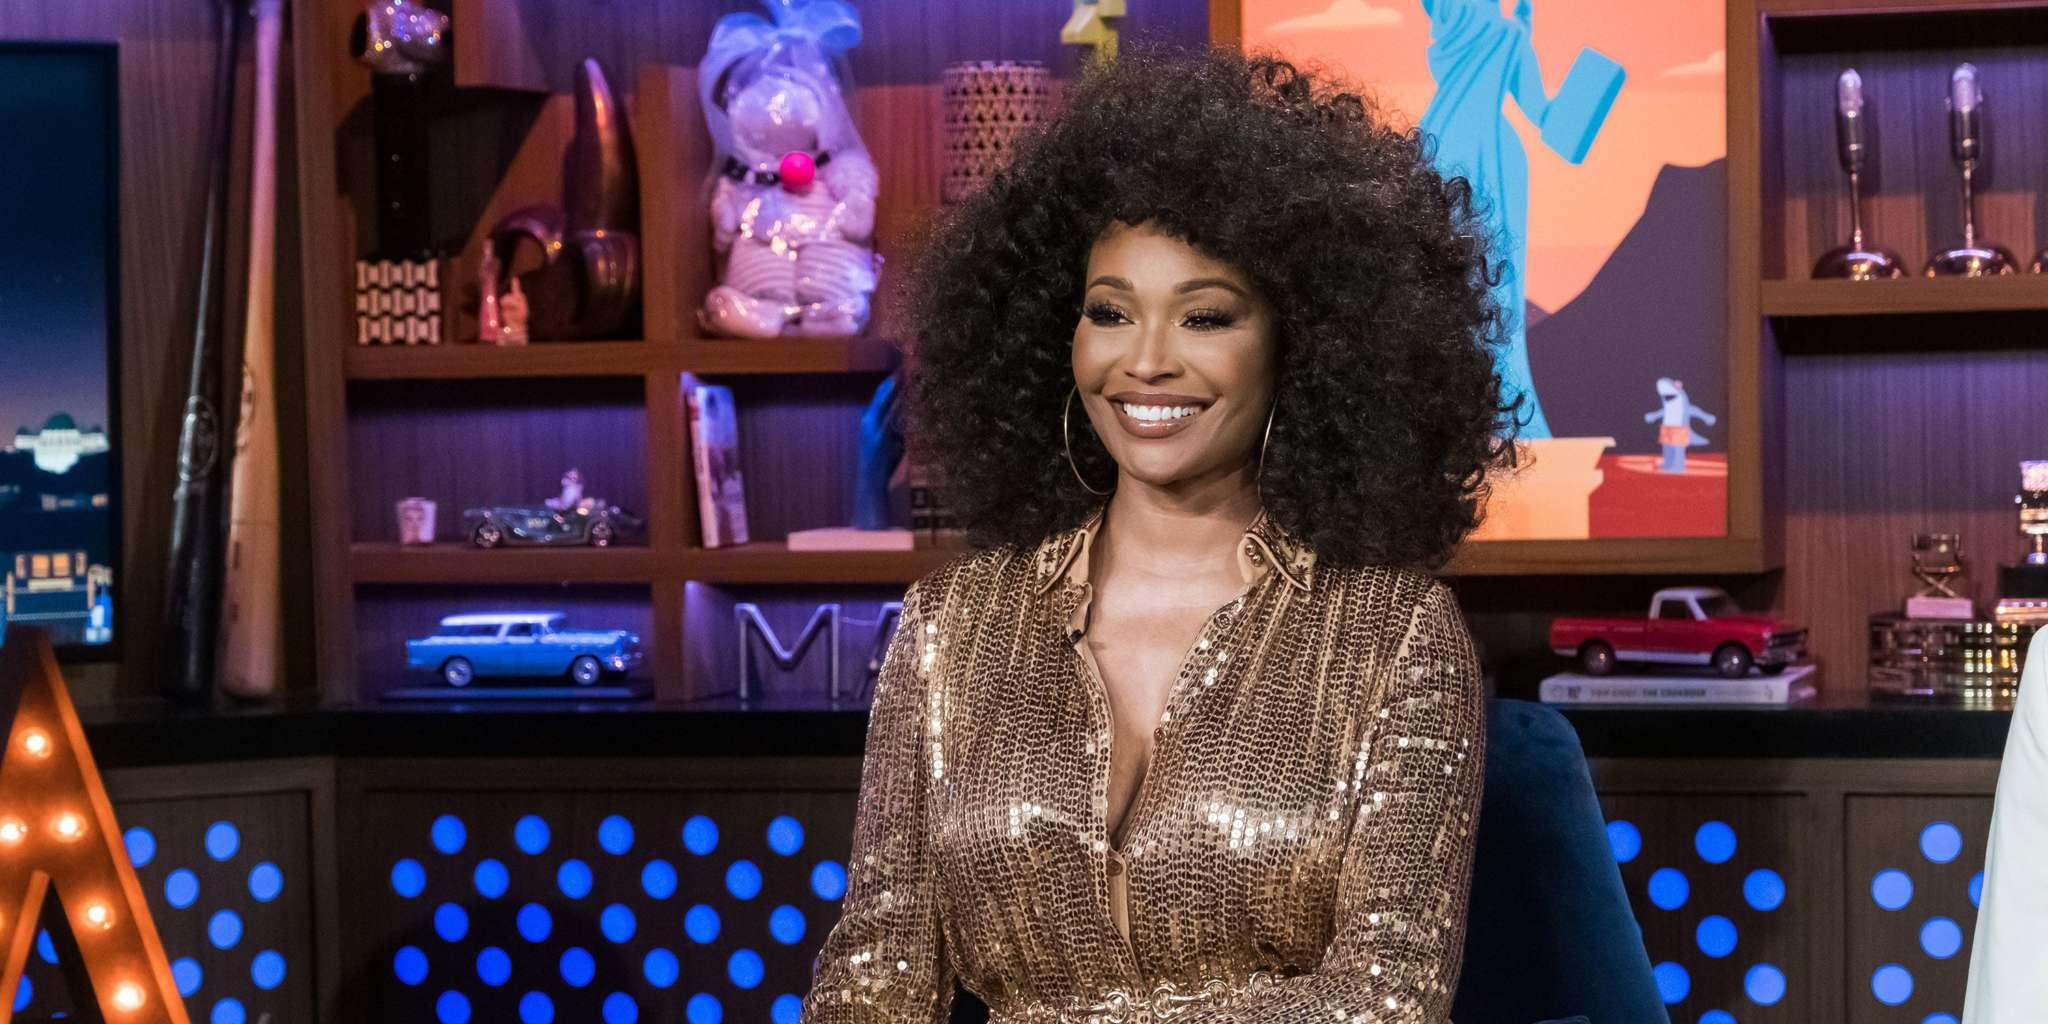 Cynthia Bailey Drops A Photo With Diddy For His Birthday - Check Them Out In Cancun